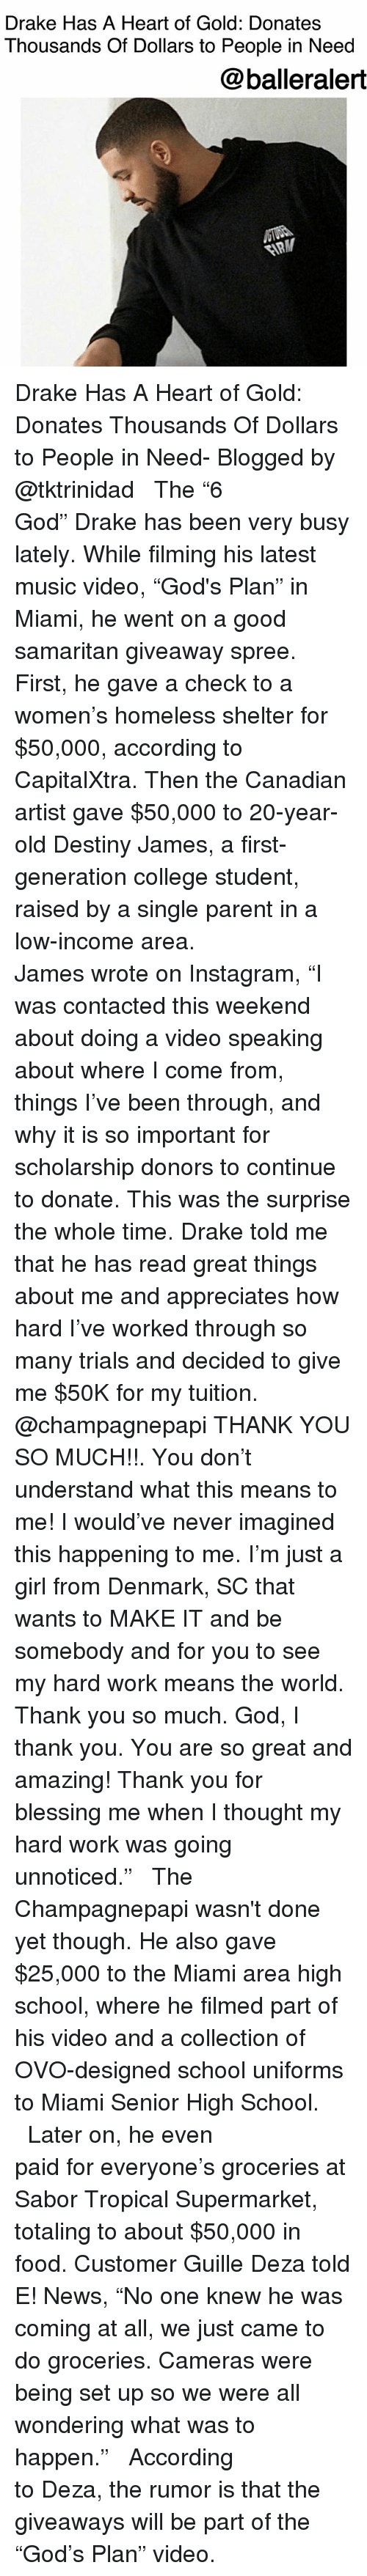 """ovo: Drake Has A Heart of Gold: Donates  Thousands Of Dollars to People in Need  @balleralert Drake Has A Heart of Gold: Donates Thousands Of Dollars to People in Need- Blogged by @tktrinidad ⠀⠀⠀⠀⠀⠀⠀⠀⠀ ⠀⠀⠀⠀⠀⠀⠀⠀⠀ The """"6 God"""" Drake has been very busy lately. While filming his latest music video, """"God's Plan"""" in Miami, he went on a good samaritan giveaway spree. First, he gave a check to a women's homeless shelter for $50,000, according to CapitalXtra. Then the Canadian artist gave $50,000 to 20-year-old Destiny James, a first-generation college student, raised by a single parent in a low-income area. ⠀⠀⠀⠀⠀⠀⠀⠀⠀ ⠀⠀⠀⠀⠀⠀⠀⠀⠀ James wrote on Instagram, """"I was contacted this weekend about doing a video speaking about where I come from, things I've been through, and why it is so important for scholarship donors to continue to donate. This was the surprise the whole time. Drake told me that he has read great things about me and appreciates how hard I've worked through so many trials and decided to give me $50K for my tuition. @champagnepapi THANK YOU SO MUCH!!. You don't understand what this means to me! I would've never imagined this happening to me. I'm just a girl from Denmark, SC that wants to MAKE IT and be somebody and for you to see my hard work means the world. Thank you so much. God, I thank you. You are so great and amazing! Thank you for blessing me when I thought my hard work was going unnoticed."""" ⠀⠀⠀⠀⠀⠀⠀⠀⠀ ⠀⠀⠀⠀⠀⠀⠀⠀⠀ The Champagnepapi wasn't done yet though. He also gave $25,000 to the Miami area high school, where he filmed part of his video and a collection of OVO-designed school uniforms to Miami Senior High School. ⠀⠀⠀⠀⠀⠀⠀⠀⠀ ⠀⠀⠀⠀⠀⠀⠀⠀⠀ Later on, he even paid for everyone's groceries at Sabor Tropical Supermarket, totaling to about $50,000 in food. Customer Guille Deza told E! News, """"No one knew he was coming at all, we just came to do groceries. Cameras were being set up so we were all wondering what was to happen."""" ⠀⠀⠀⠀⠀⠀⠀⠀⠀ ⠀⠀⠀⠀⠀⠀⠀⠀⠀ According to Deza, the rumo"""